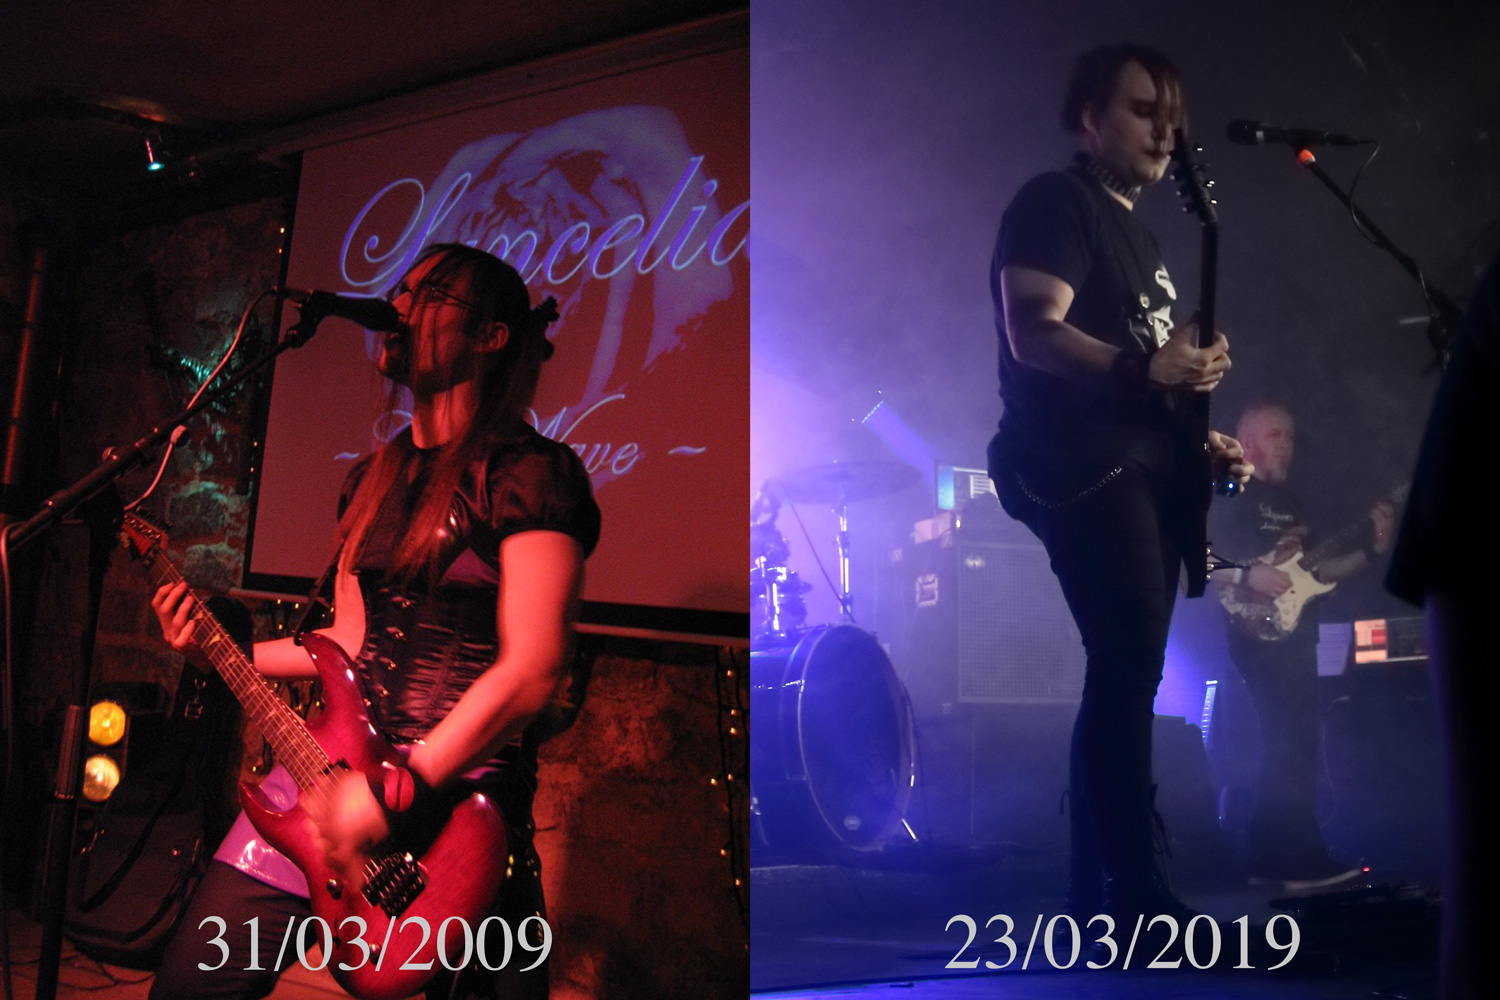 Lyncelia 10 Years concerts